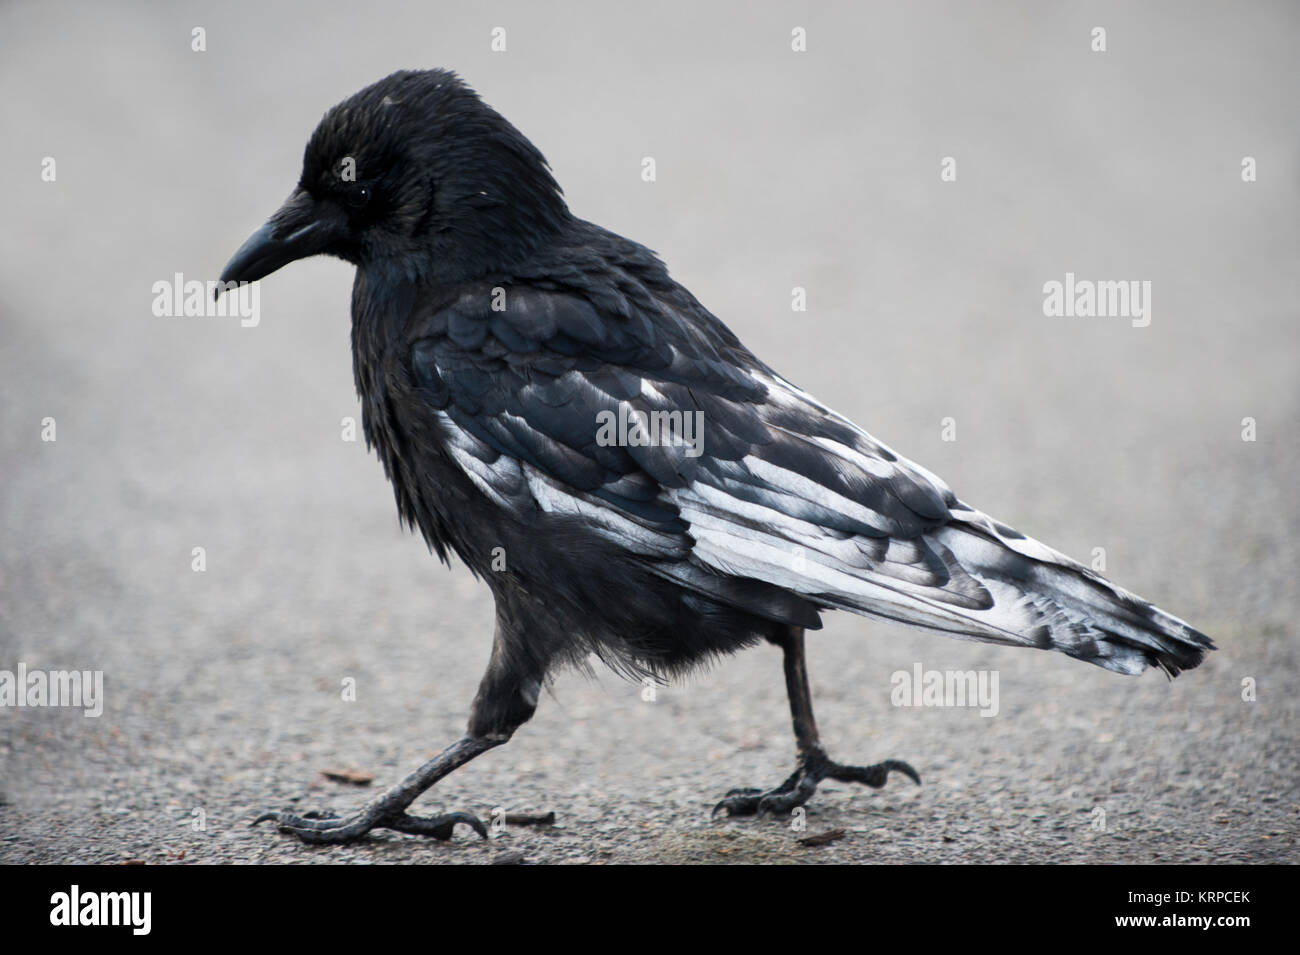 Carrion Crow, (Corvus corone), with partial leucism or leukism in plumage, Regents Park, London, United Kingdom - Stock Image